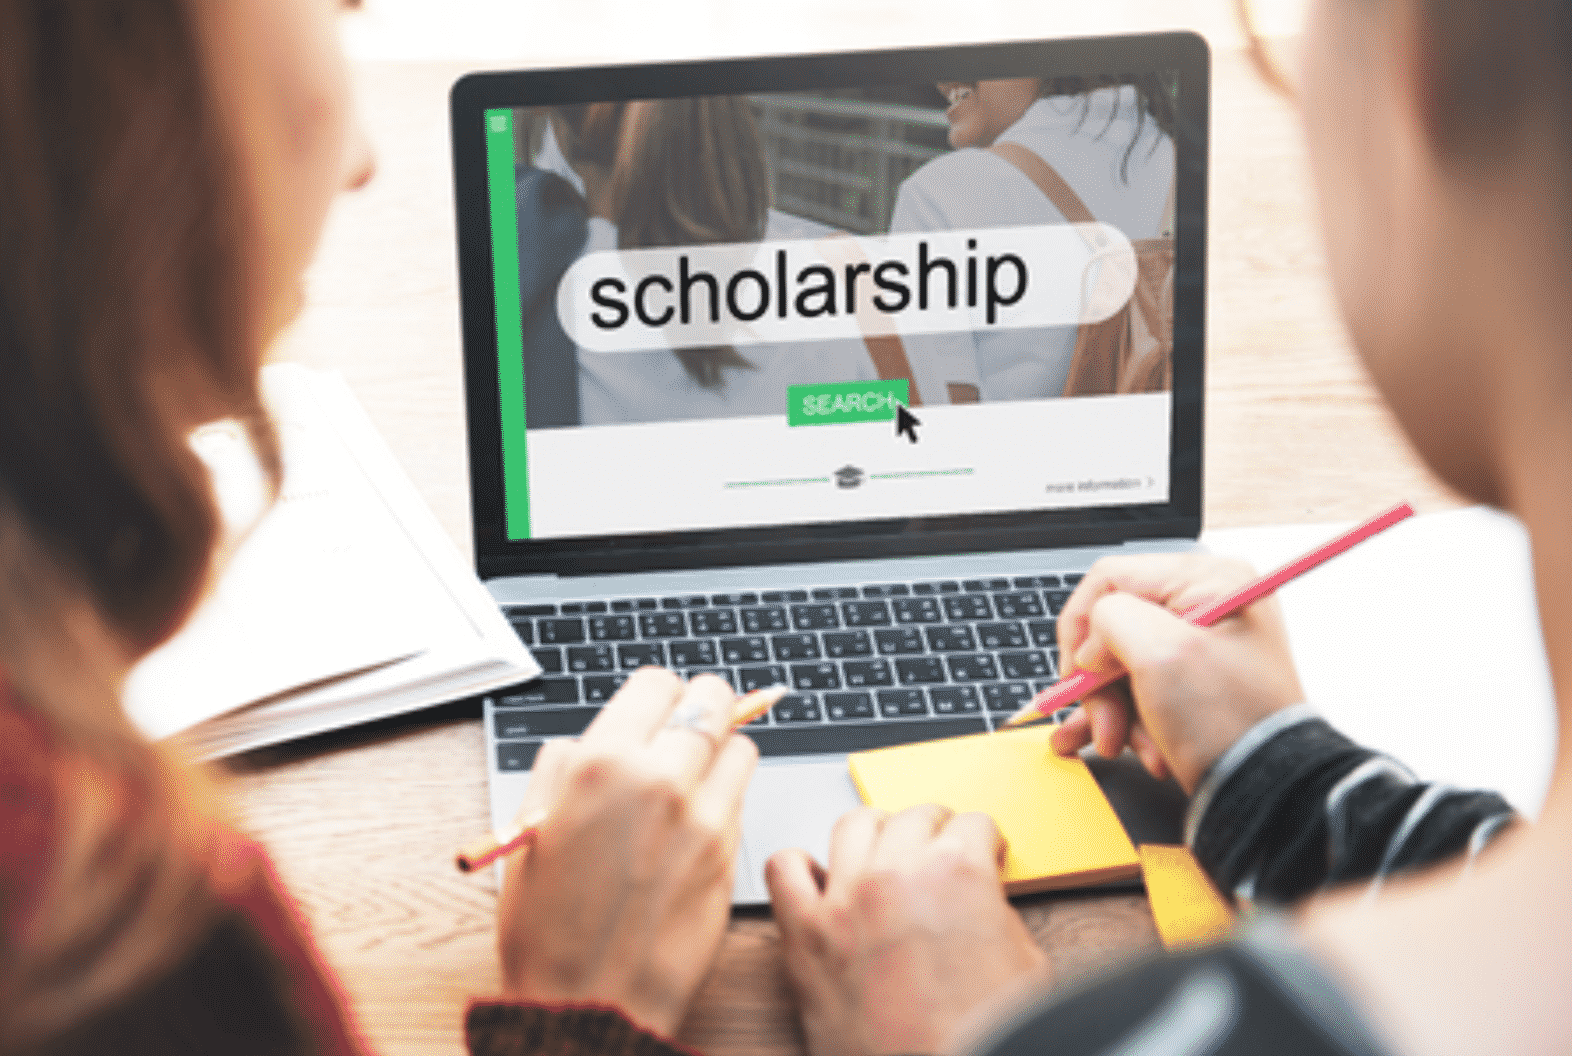 Can You Apply for Too Many Scholarships?